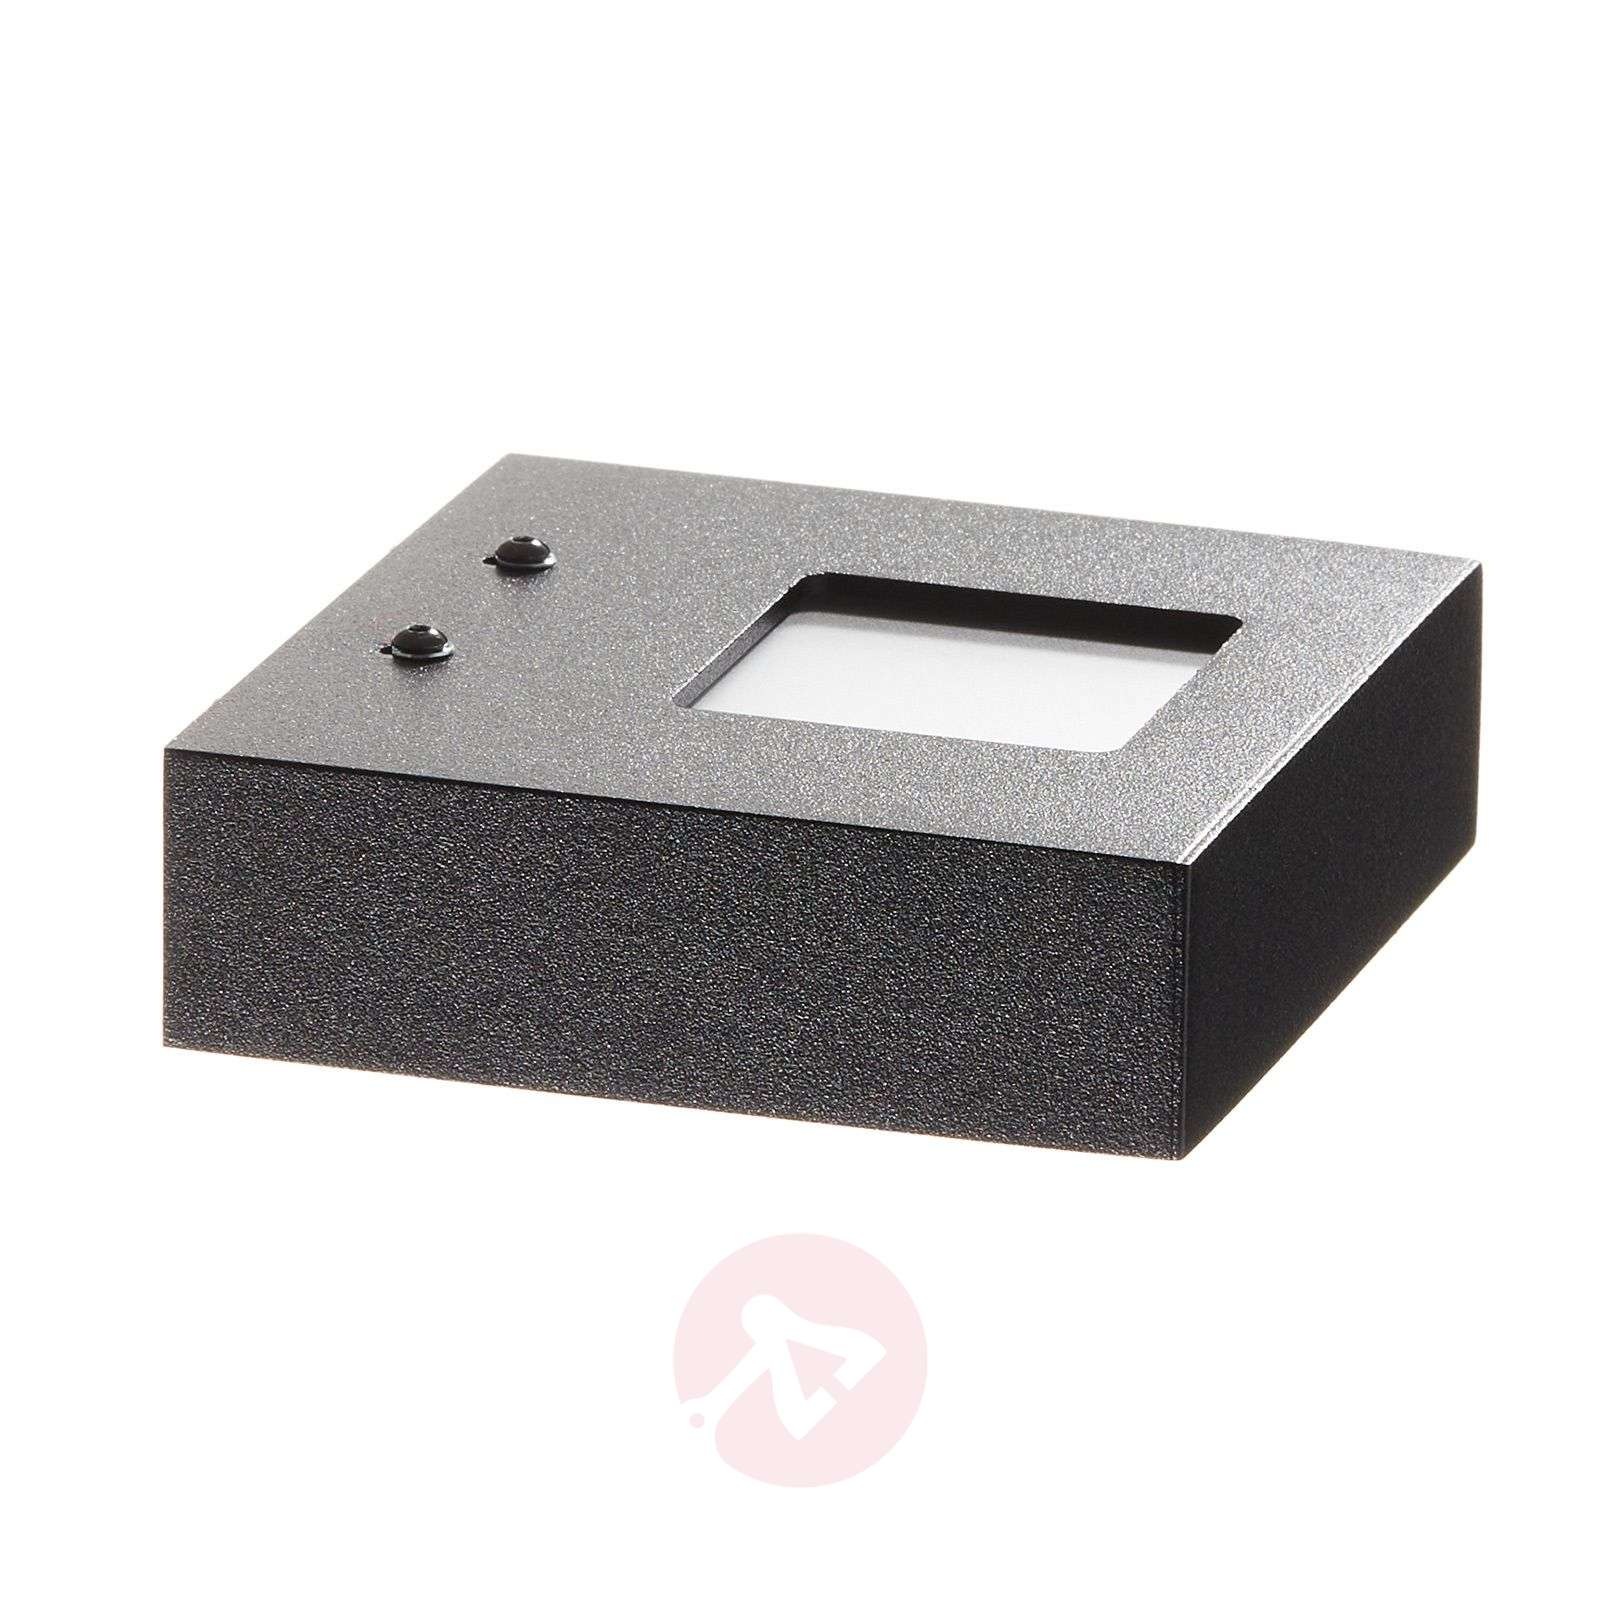 Applique à éclairage indirect LED Cubus, noir-1556079-01